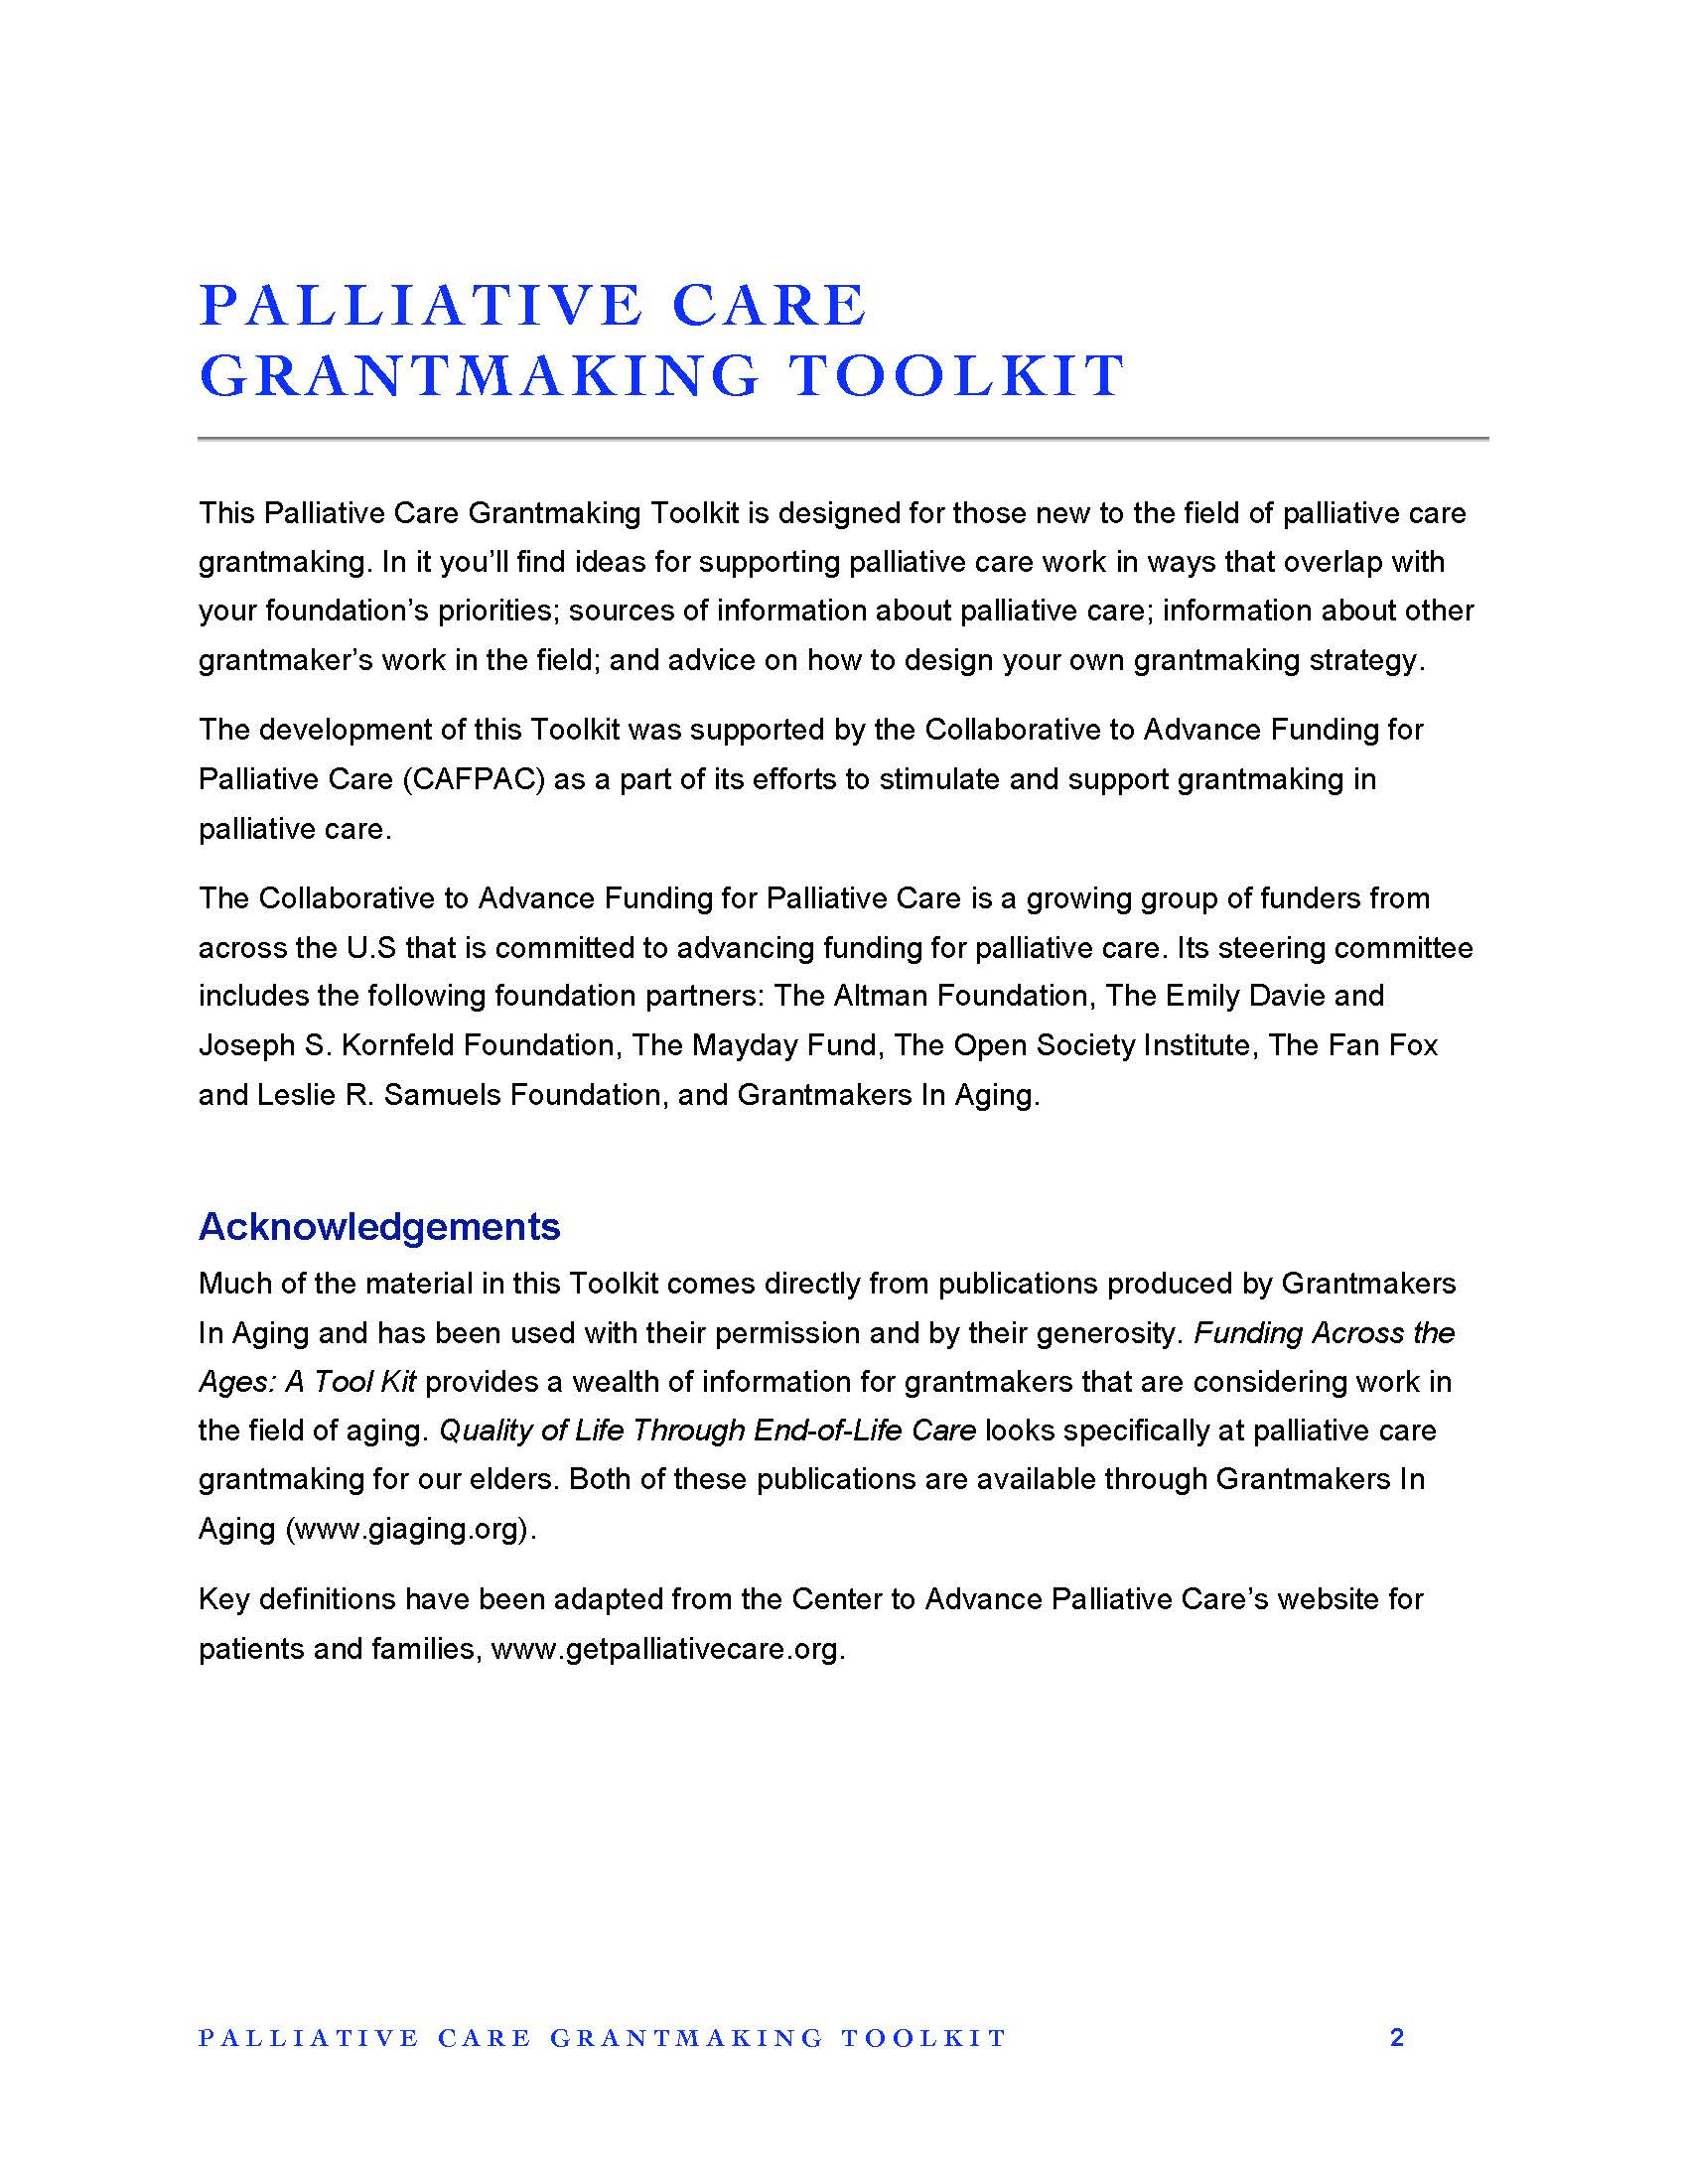 Palliative Care Grantmaking Toolkit_Page_03.jpg